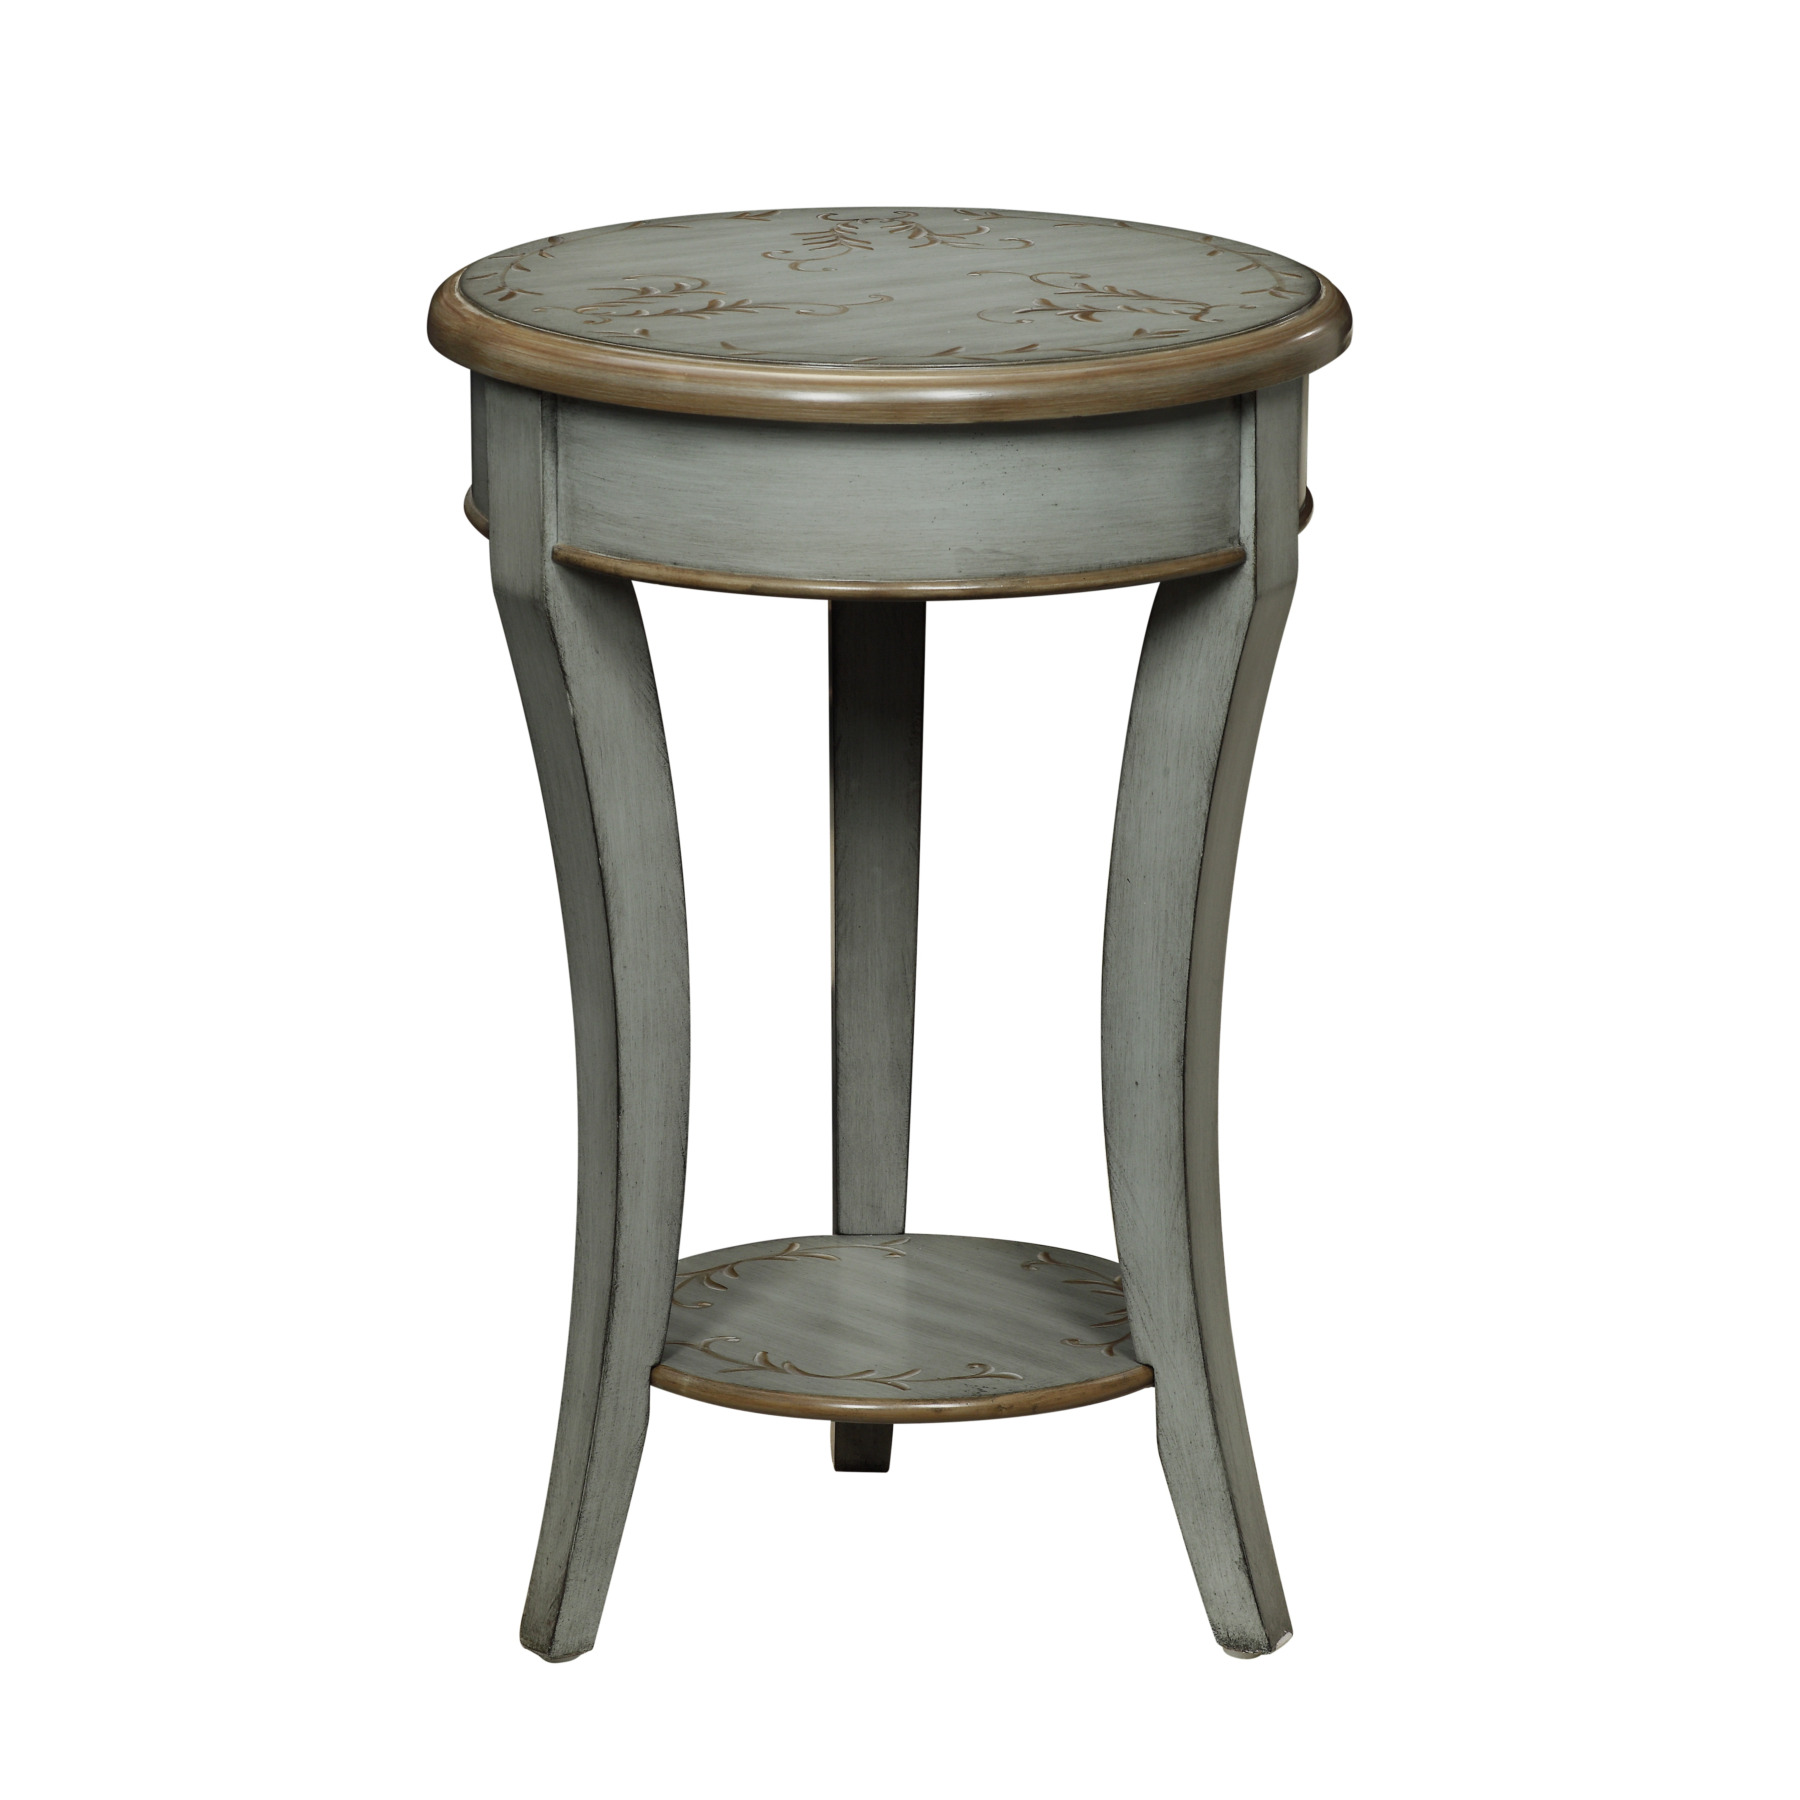 michael anthony furniture floral top greygreen round gray accent table grey wood target marble metal makeup white end black mirrored bedside small glass triangle with drawer